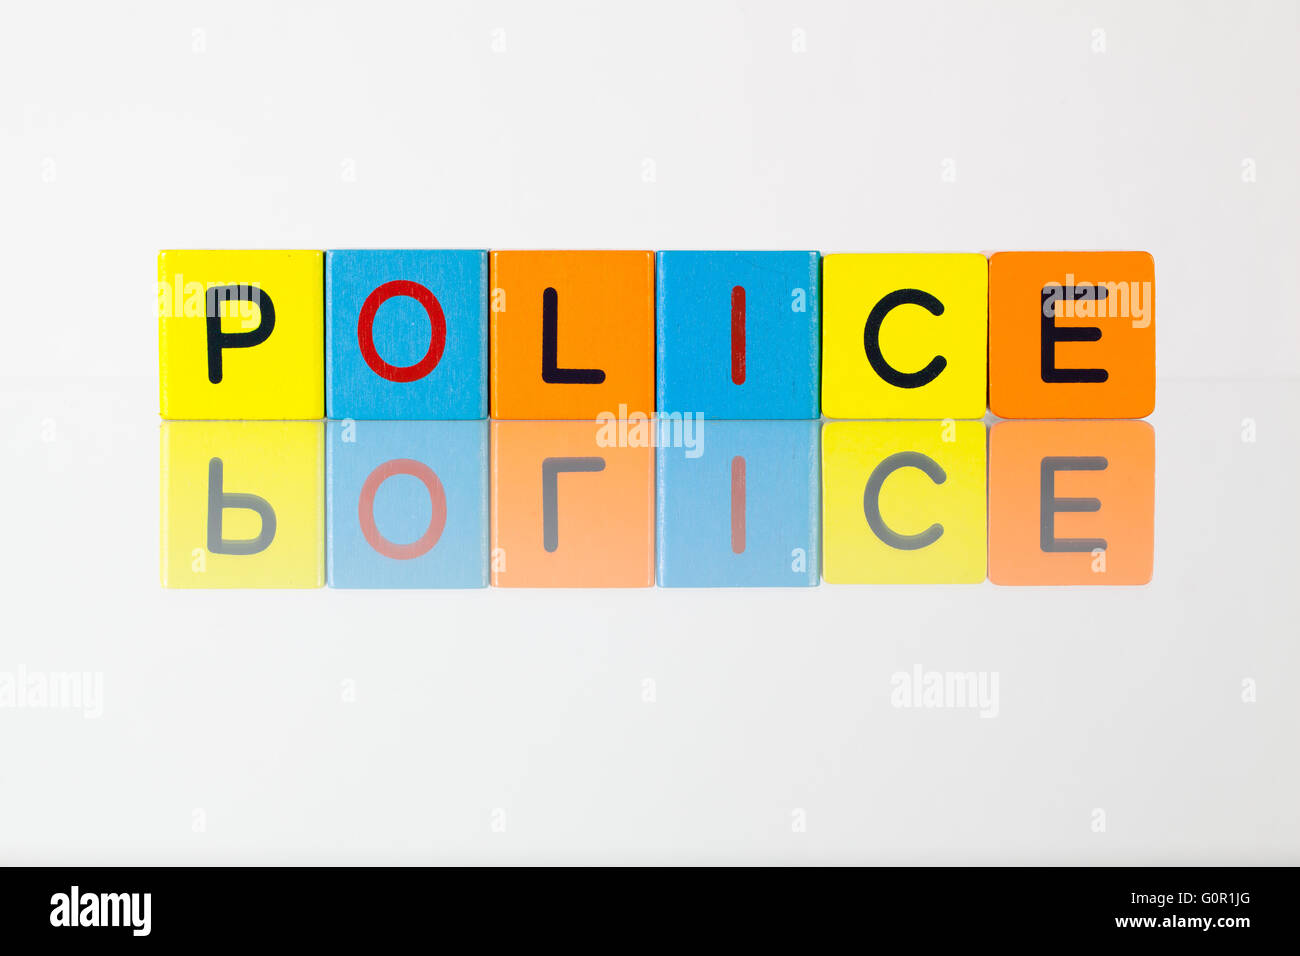 Police - an inscription from children's wooden blocks - Stock Image